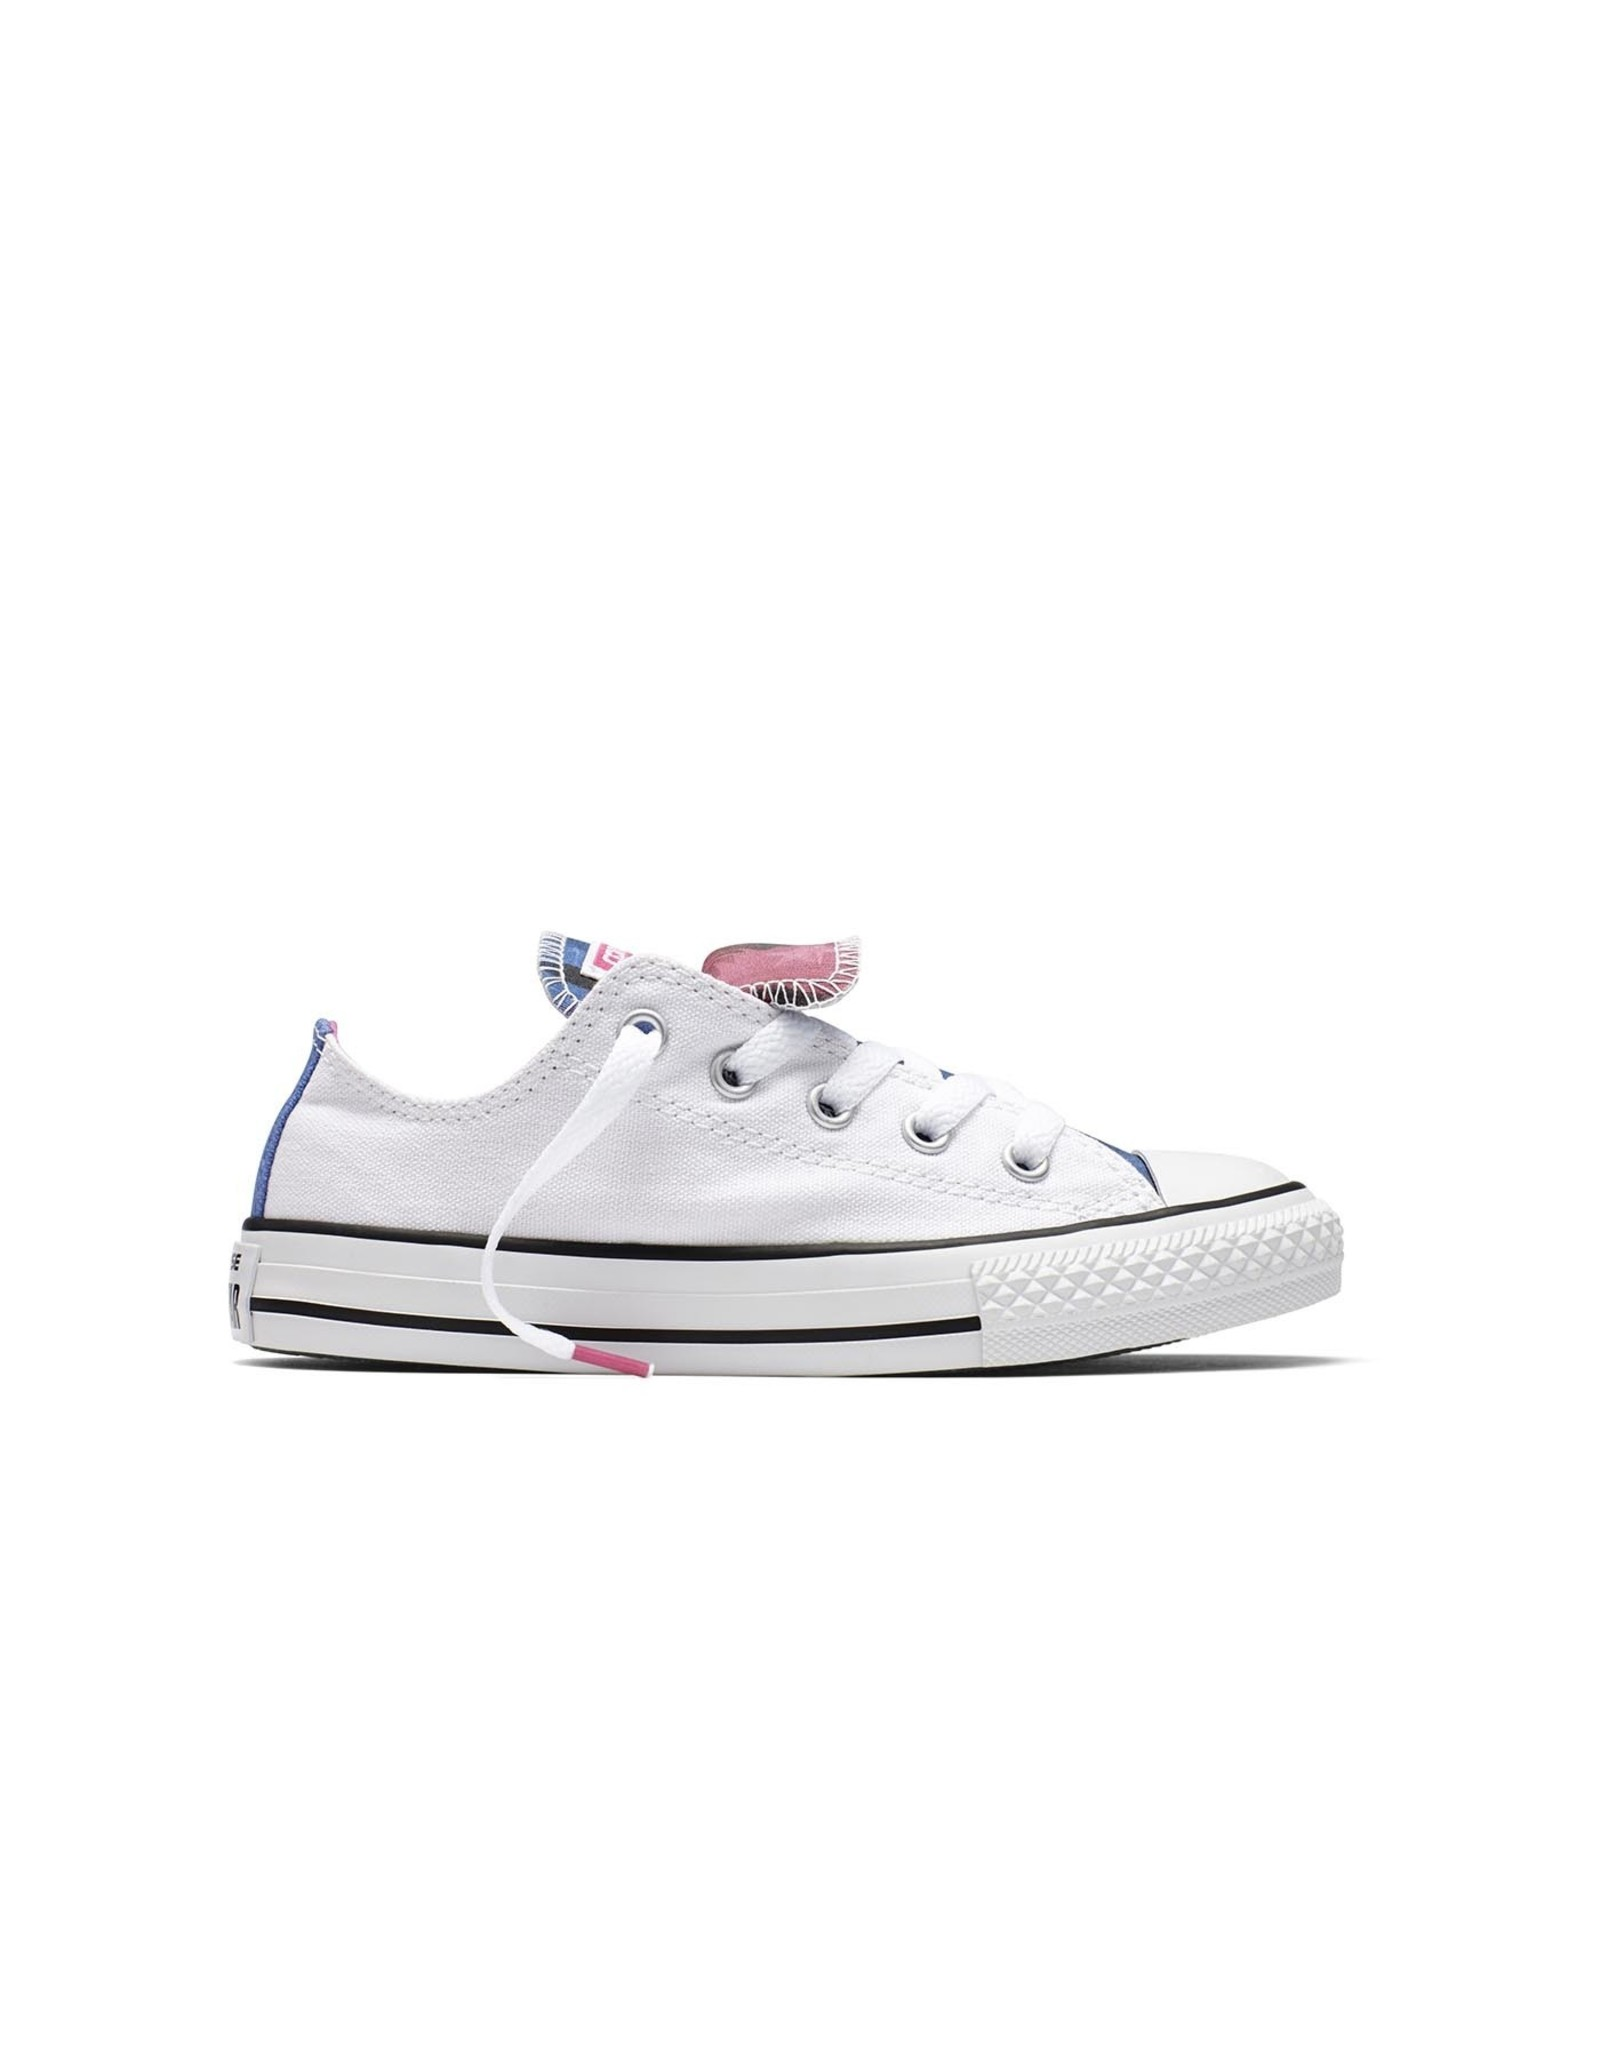 CONVERSE CHUCK TAYLOR DOUBLE TONGUE OX WHITE/PINK/WHITE CVDW-654339C